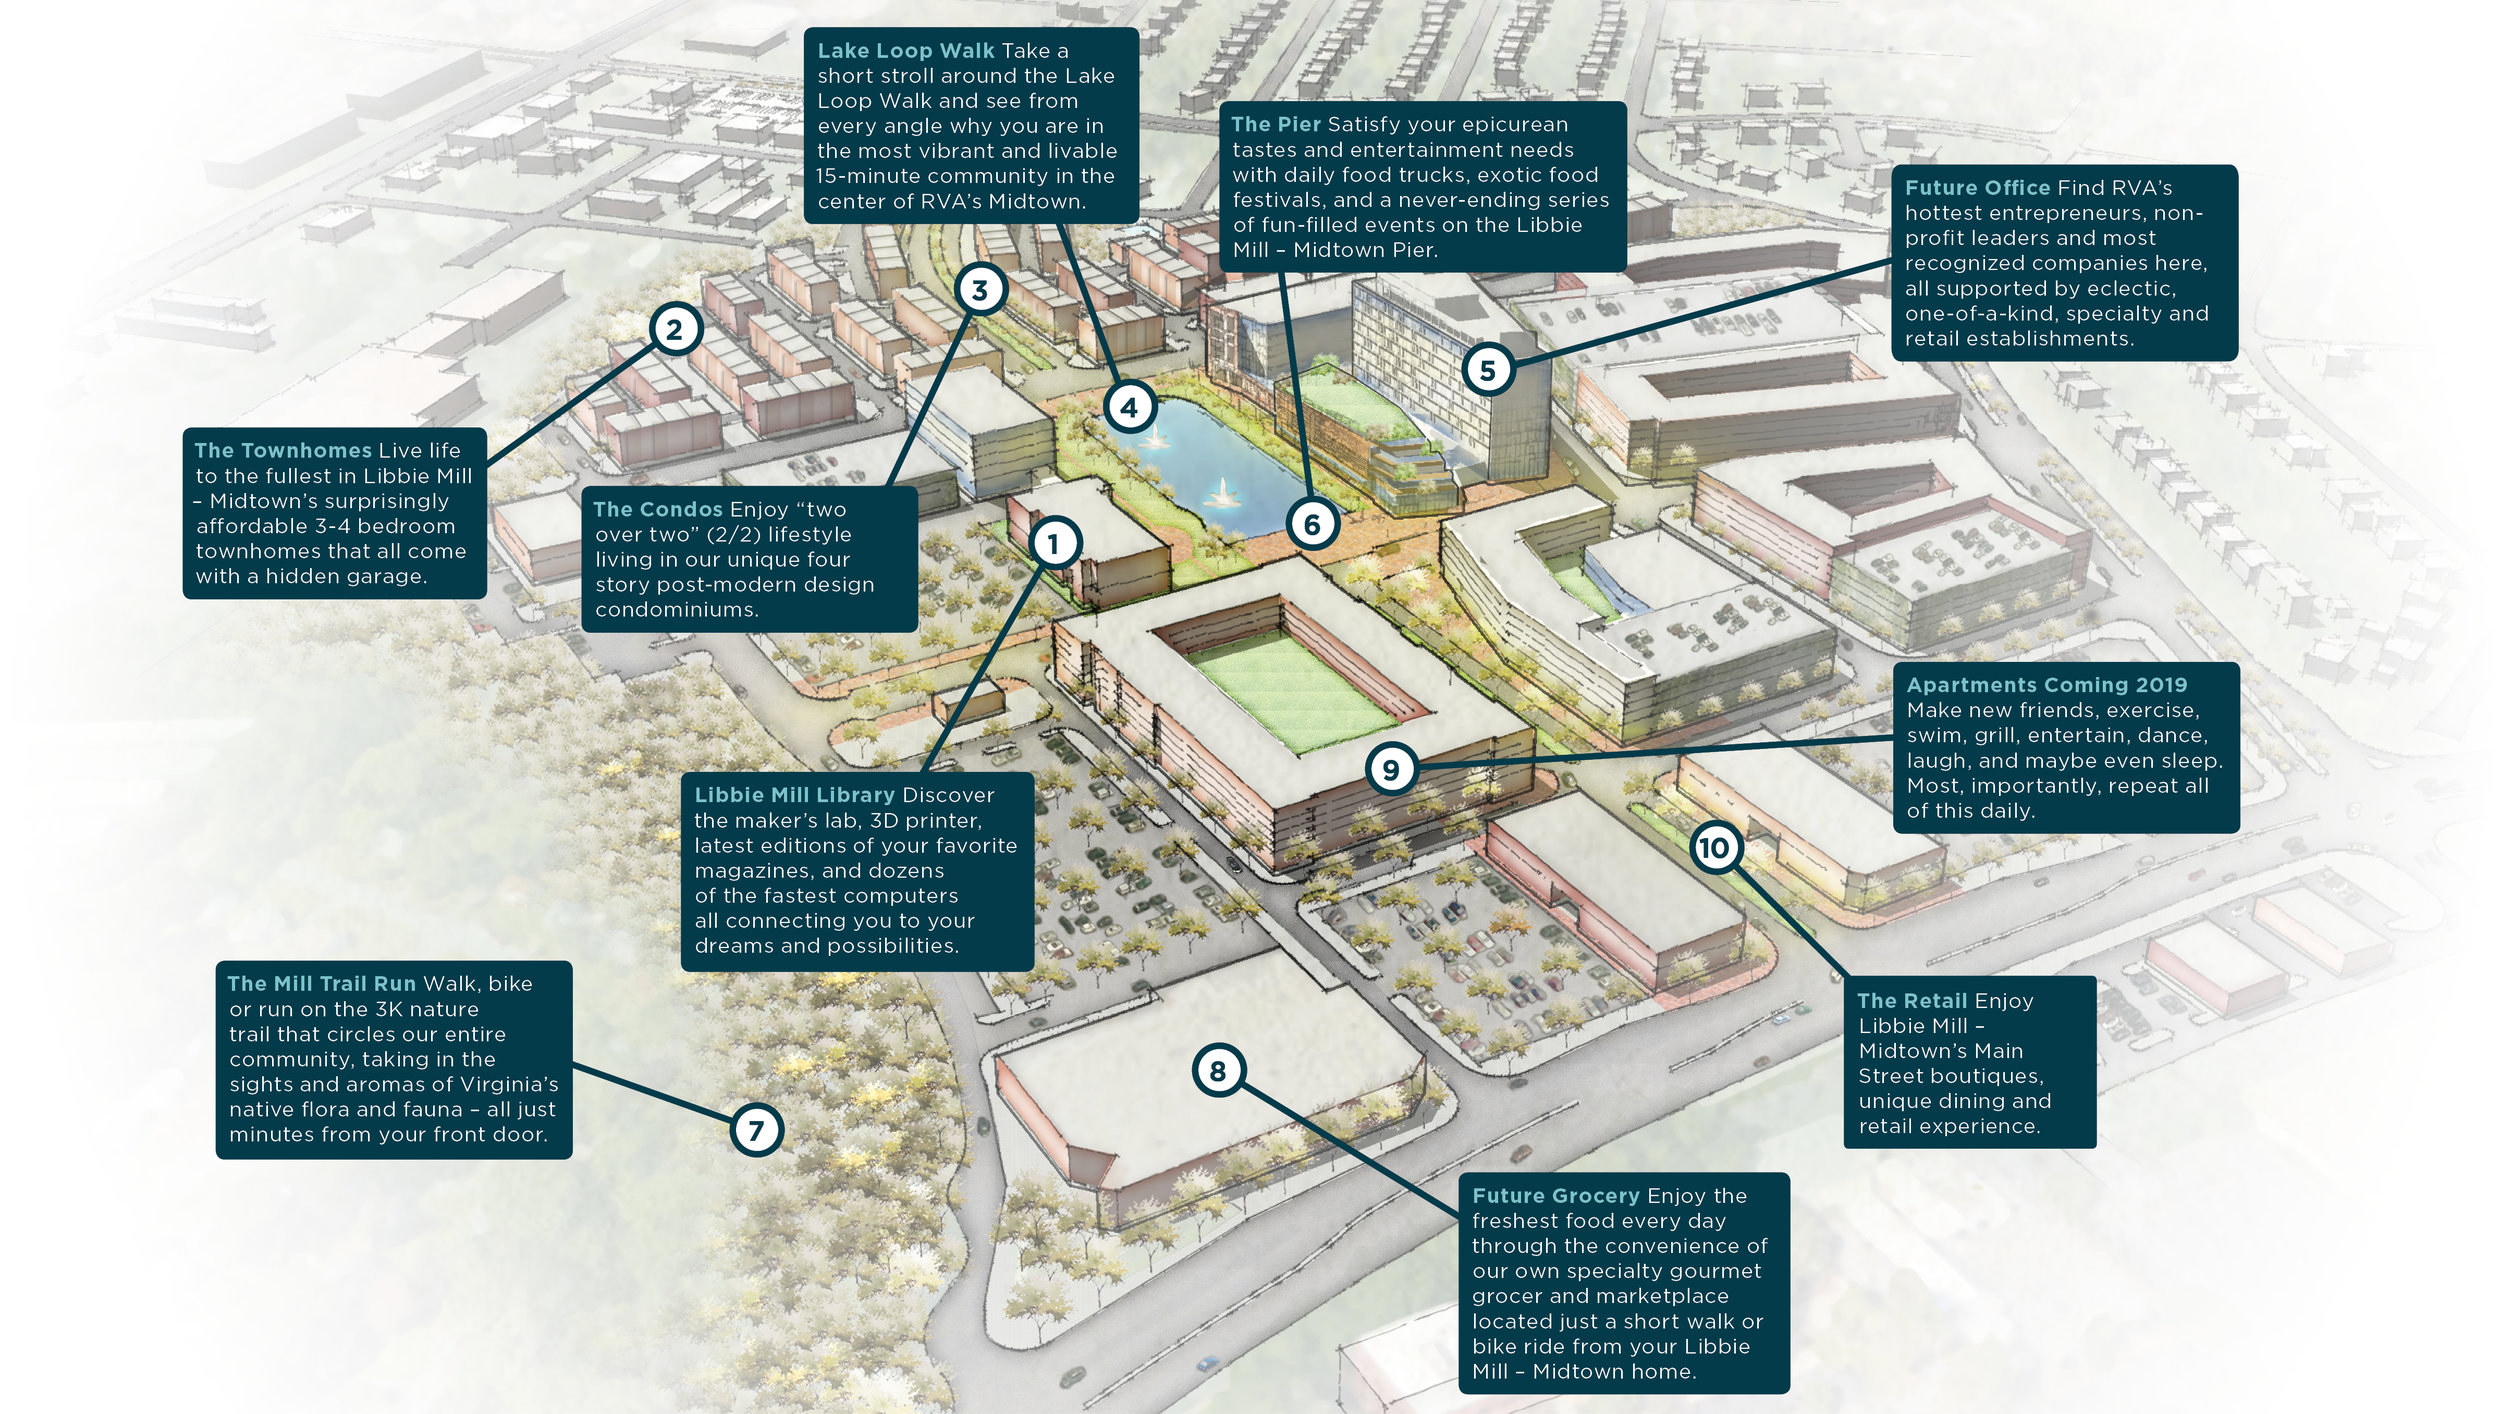 Hickok Cole Architects partnered with Gumenick and Creative to create an illustrated masterplan as Libbie Mill grows.